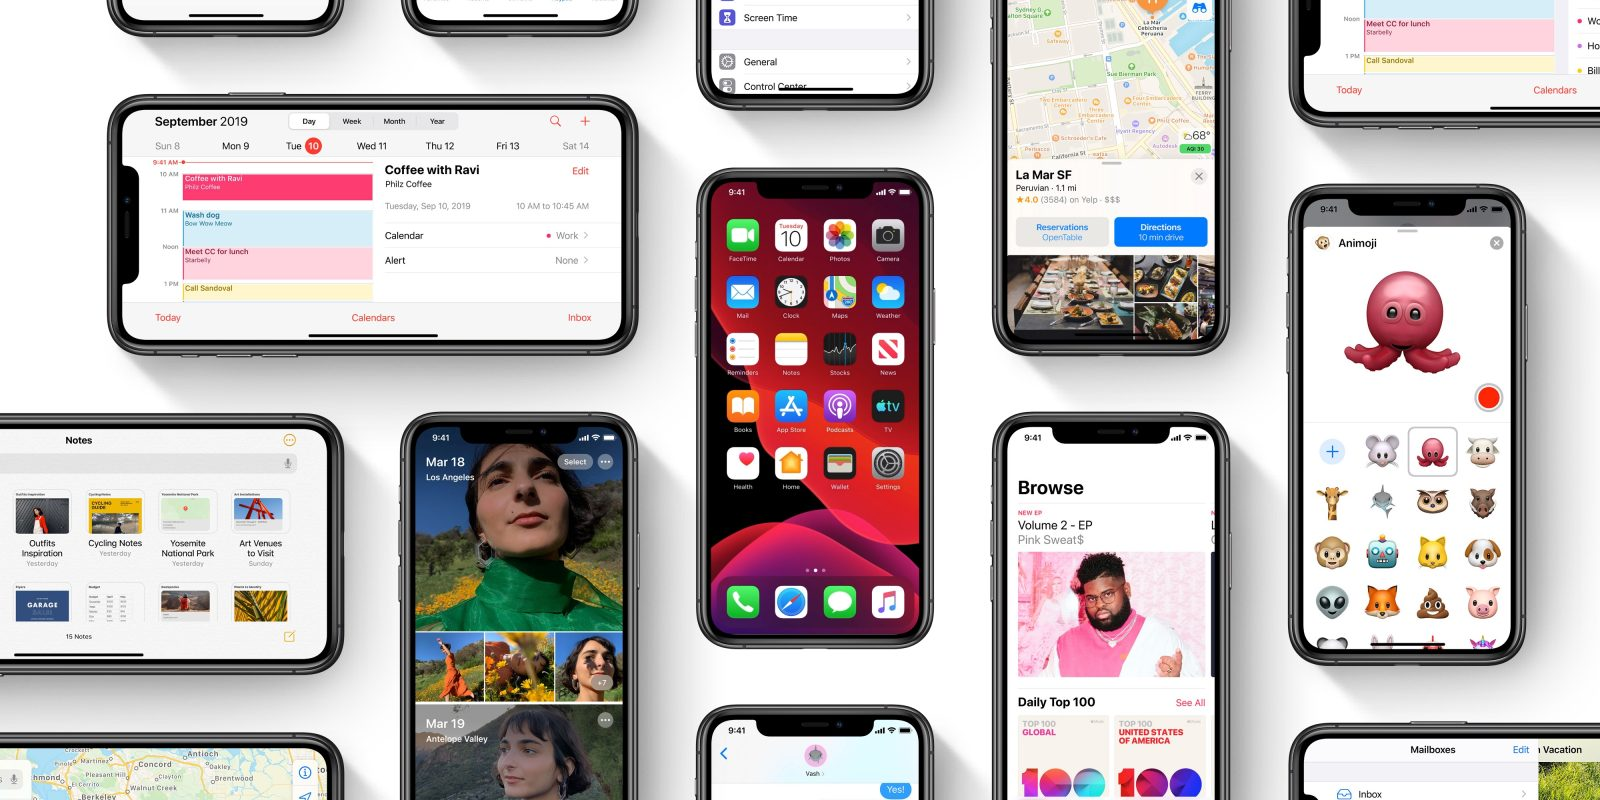 Bloomberg: Apple is changing the way it tests software following iOS 13's buggy debut, new process starts with iOS 14